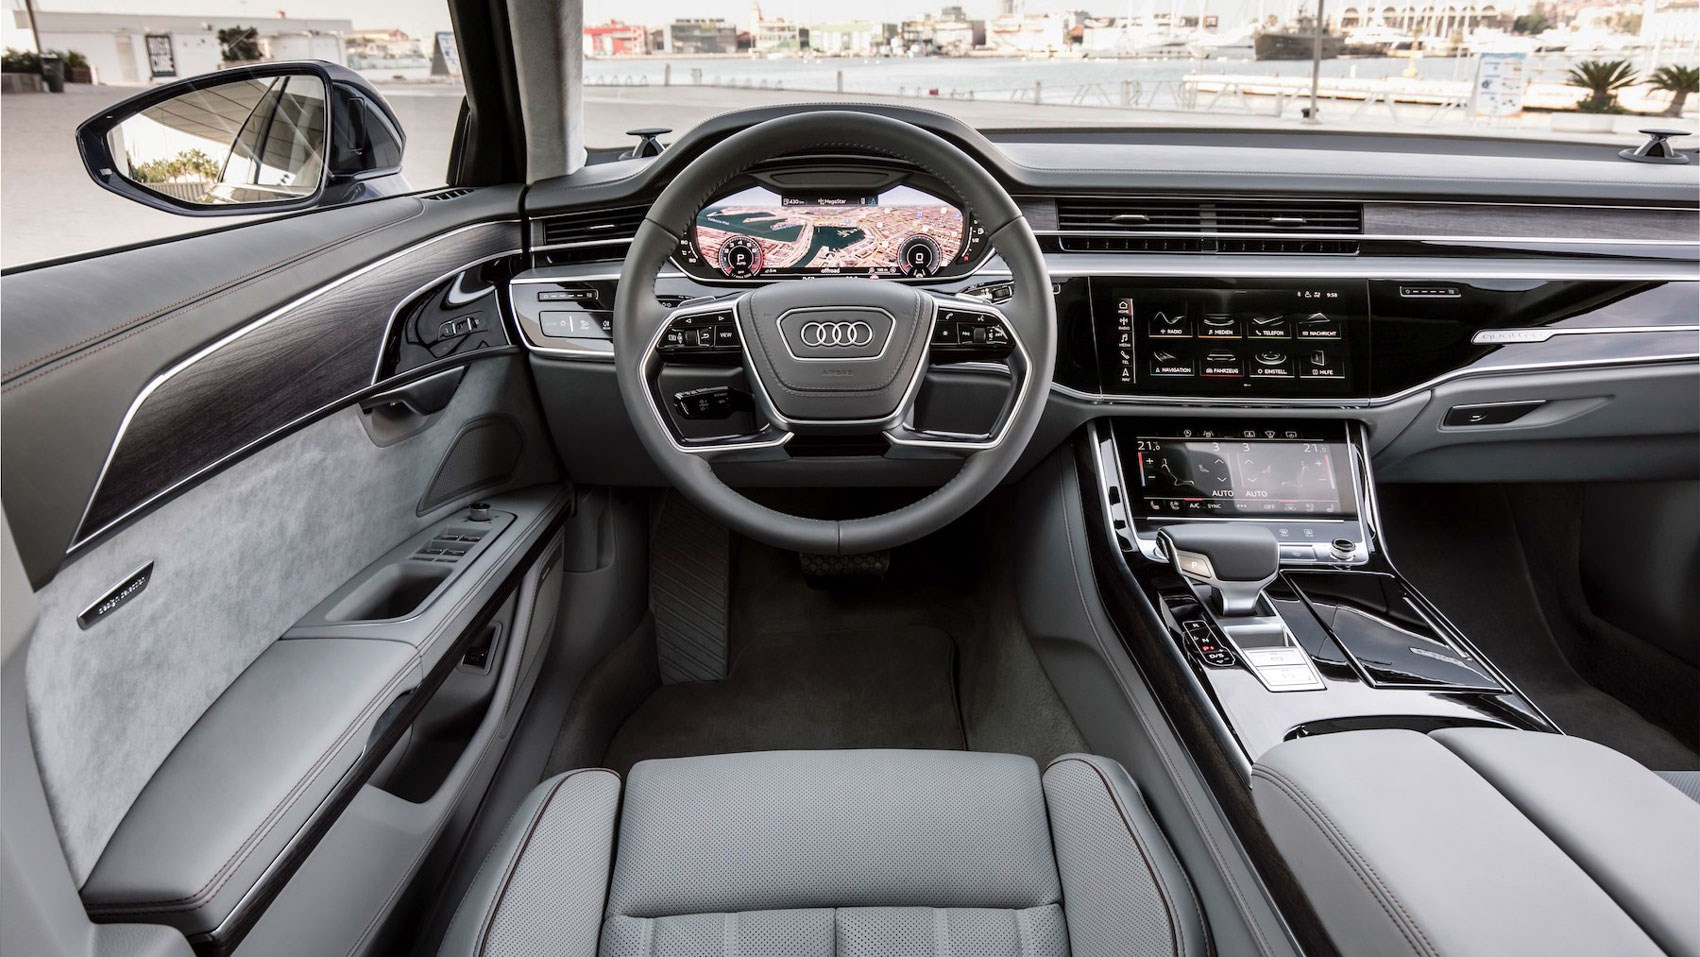 Audi A7 Sportback: this is it!